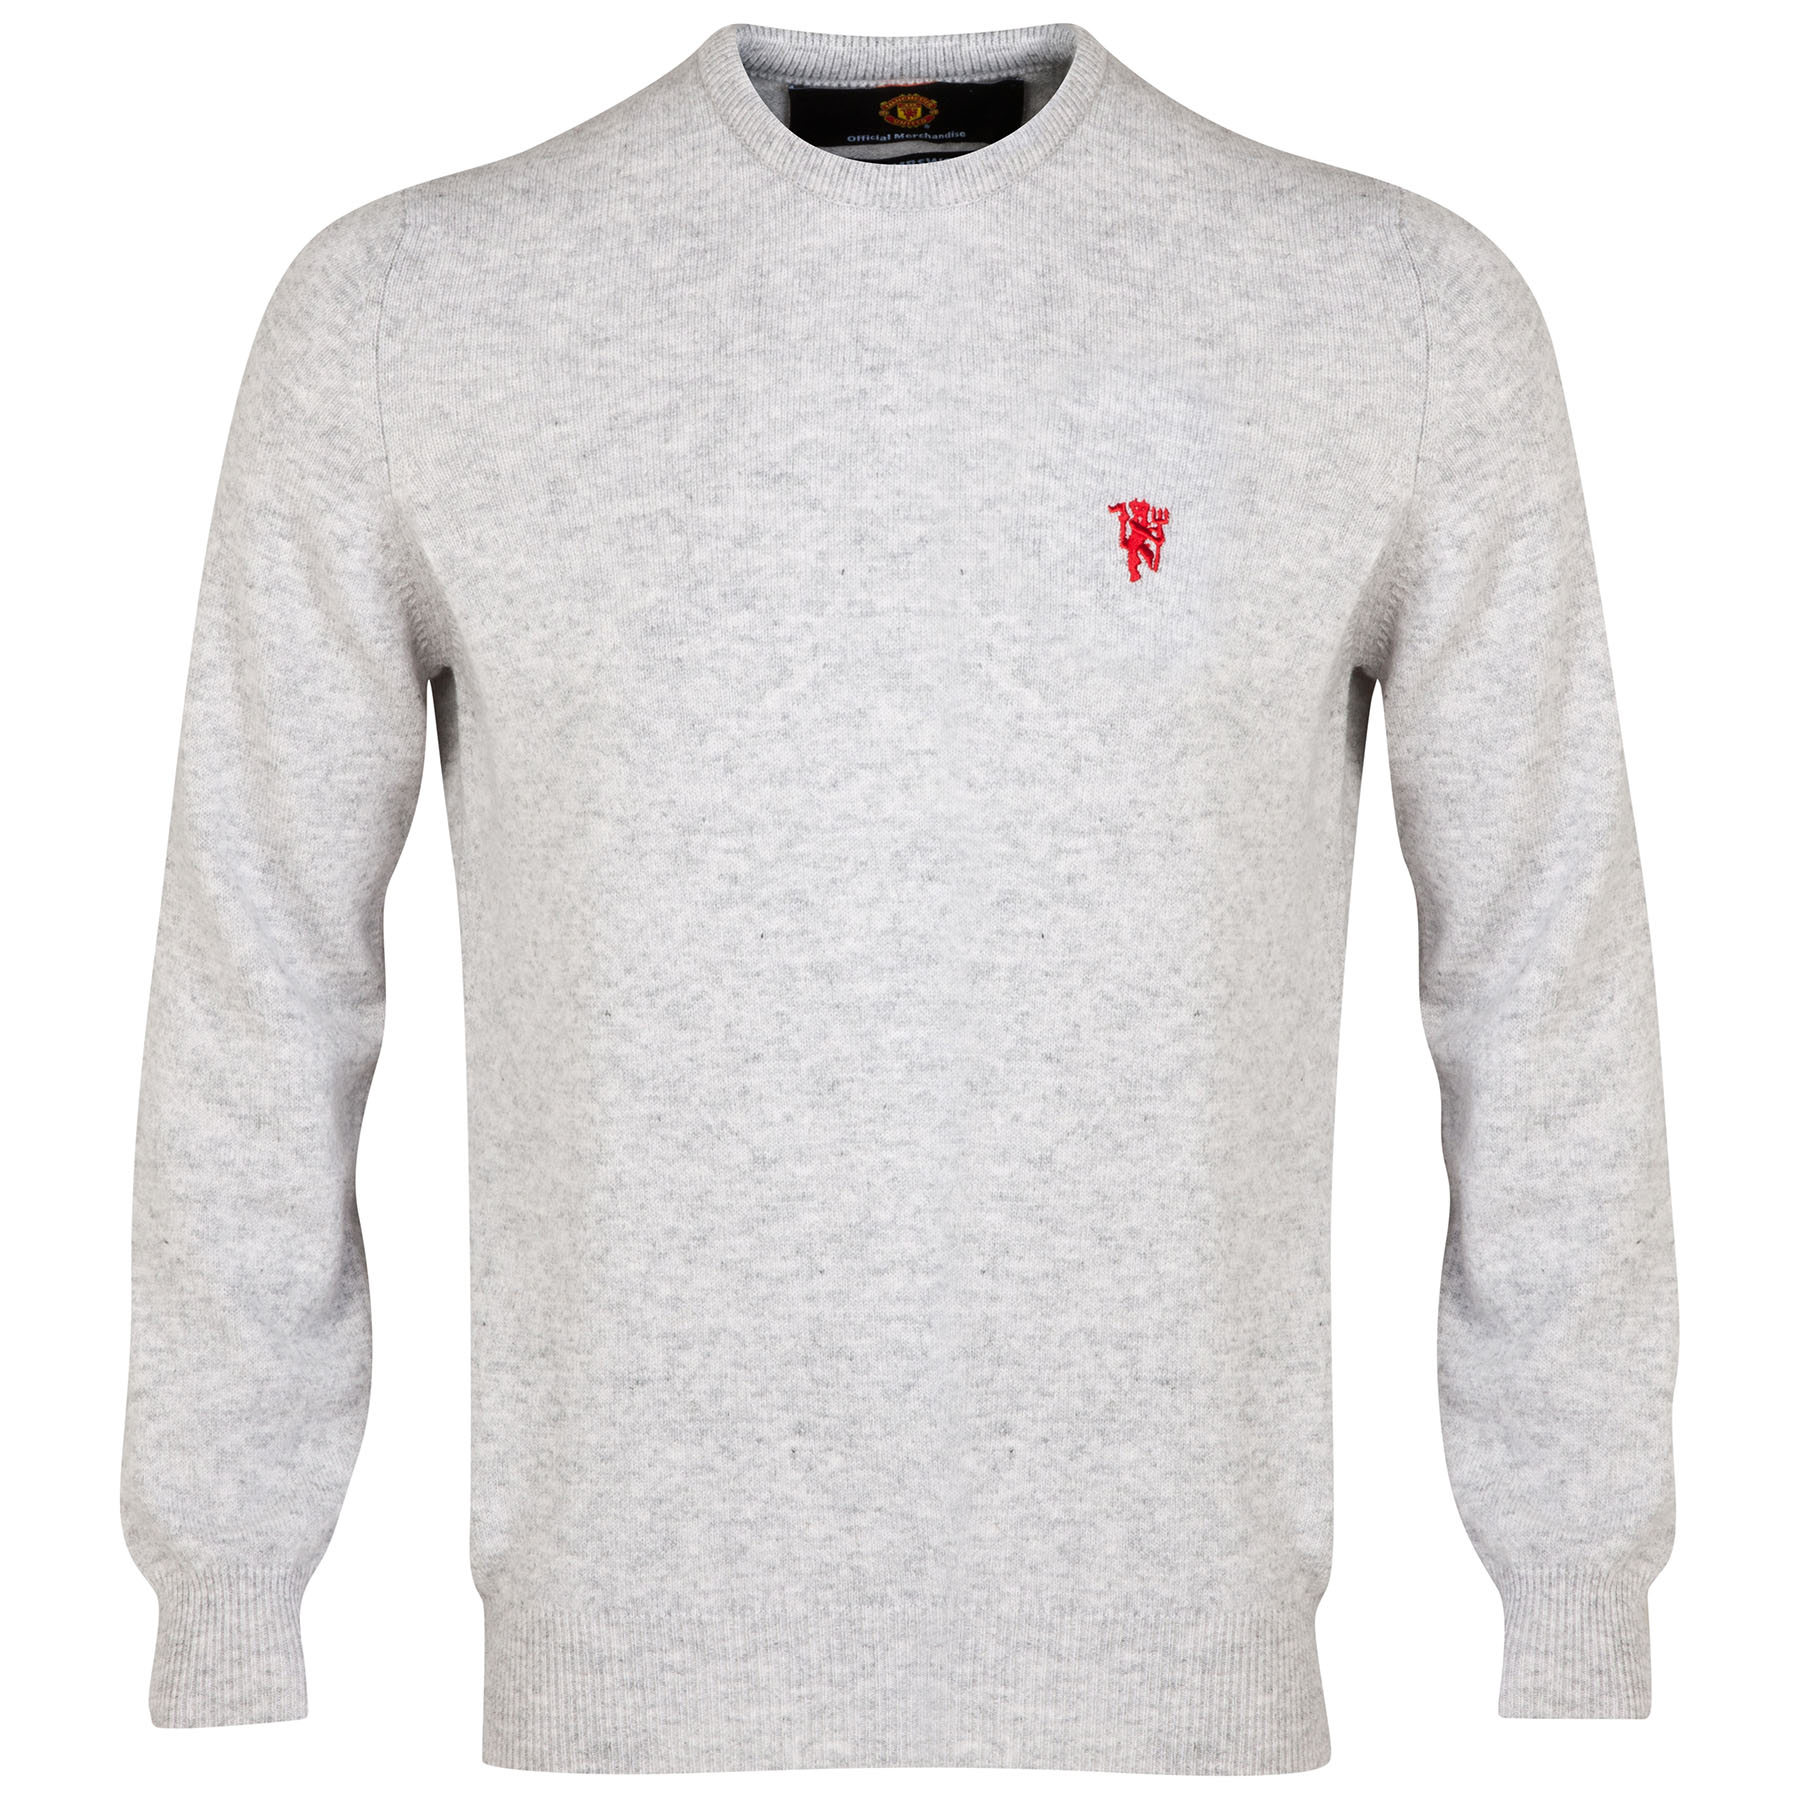 Manchester United Lambswool Crew Neck Sweater - Pearl Grey - Mens